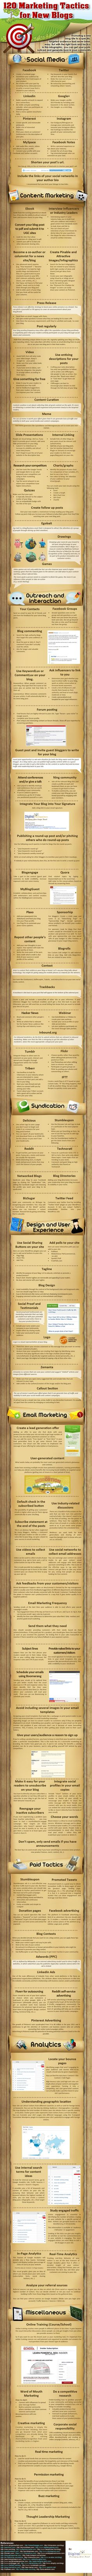 120 Marketing Tactics For New Blogs {Infographic} | Blogelina